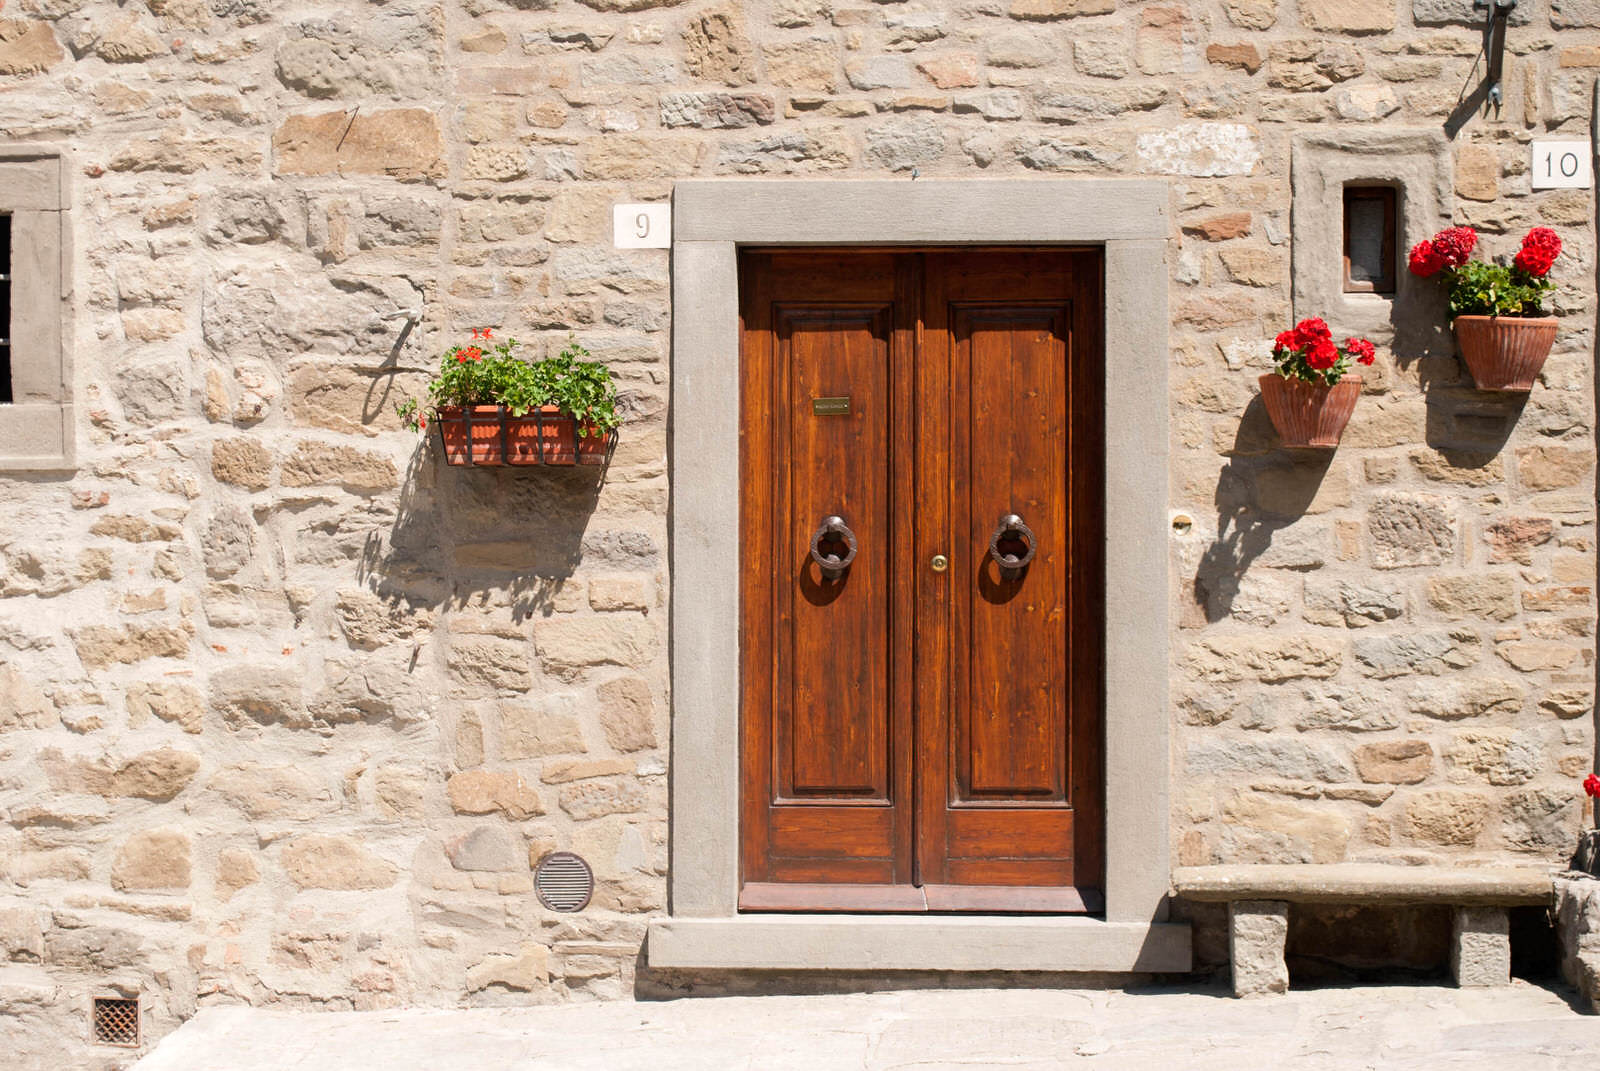 Doorway to a Cortona home decorated with flowers